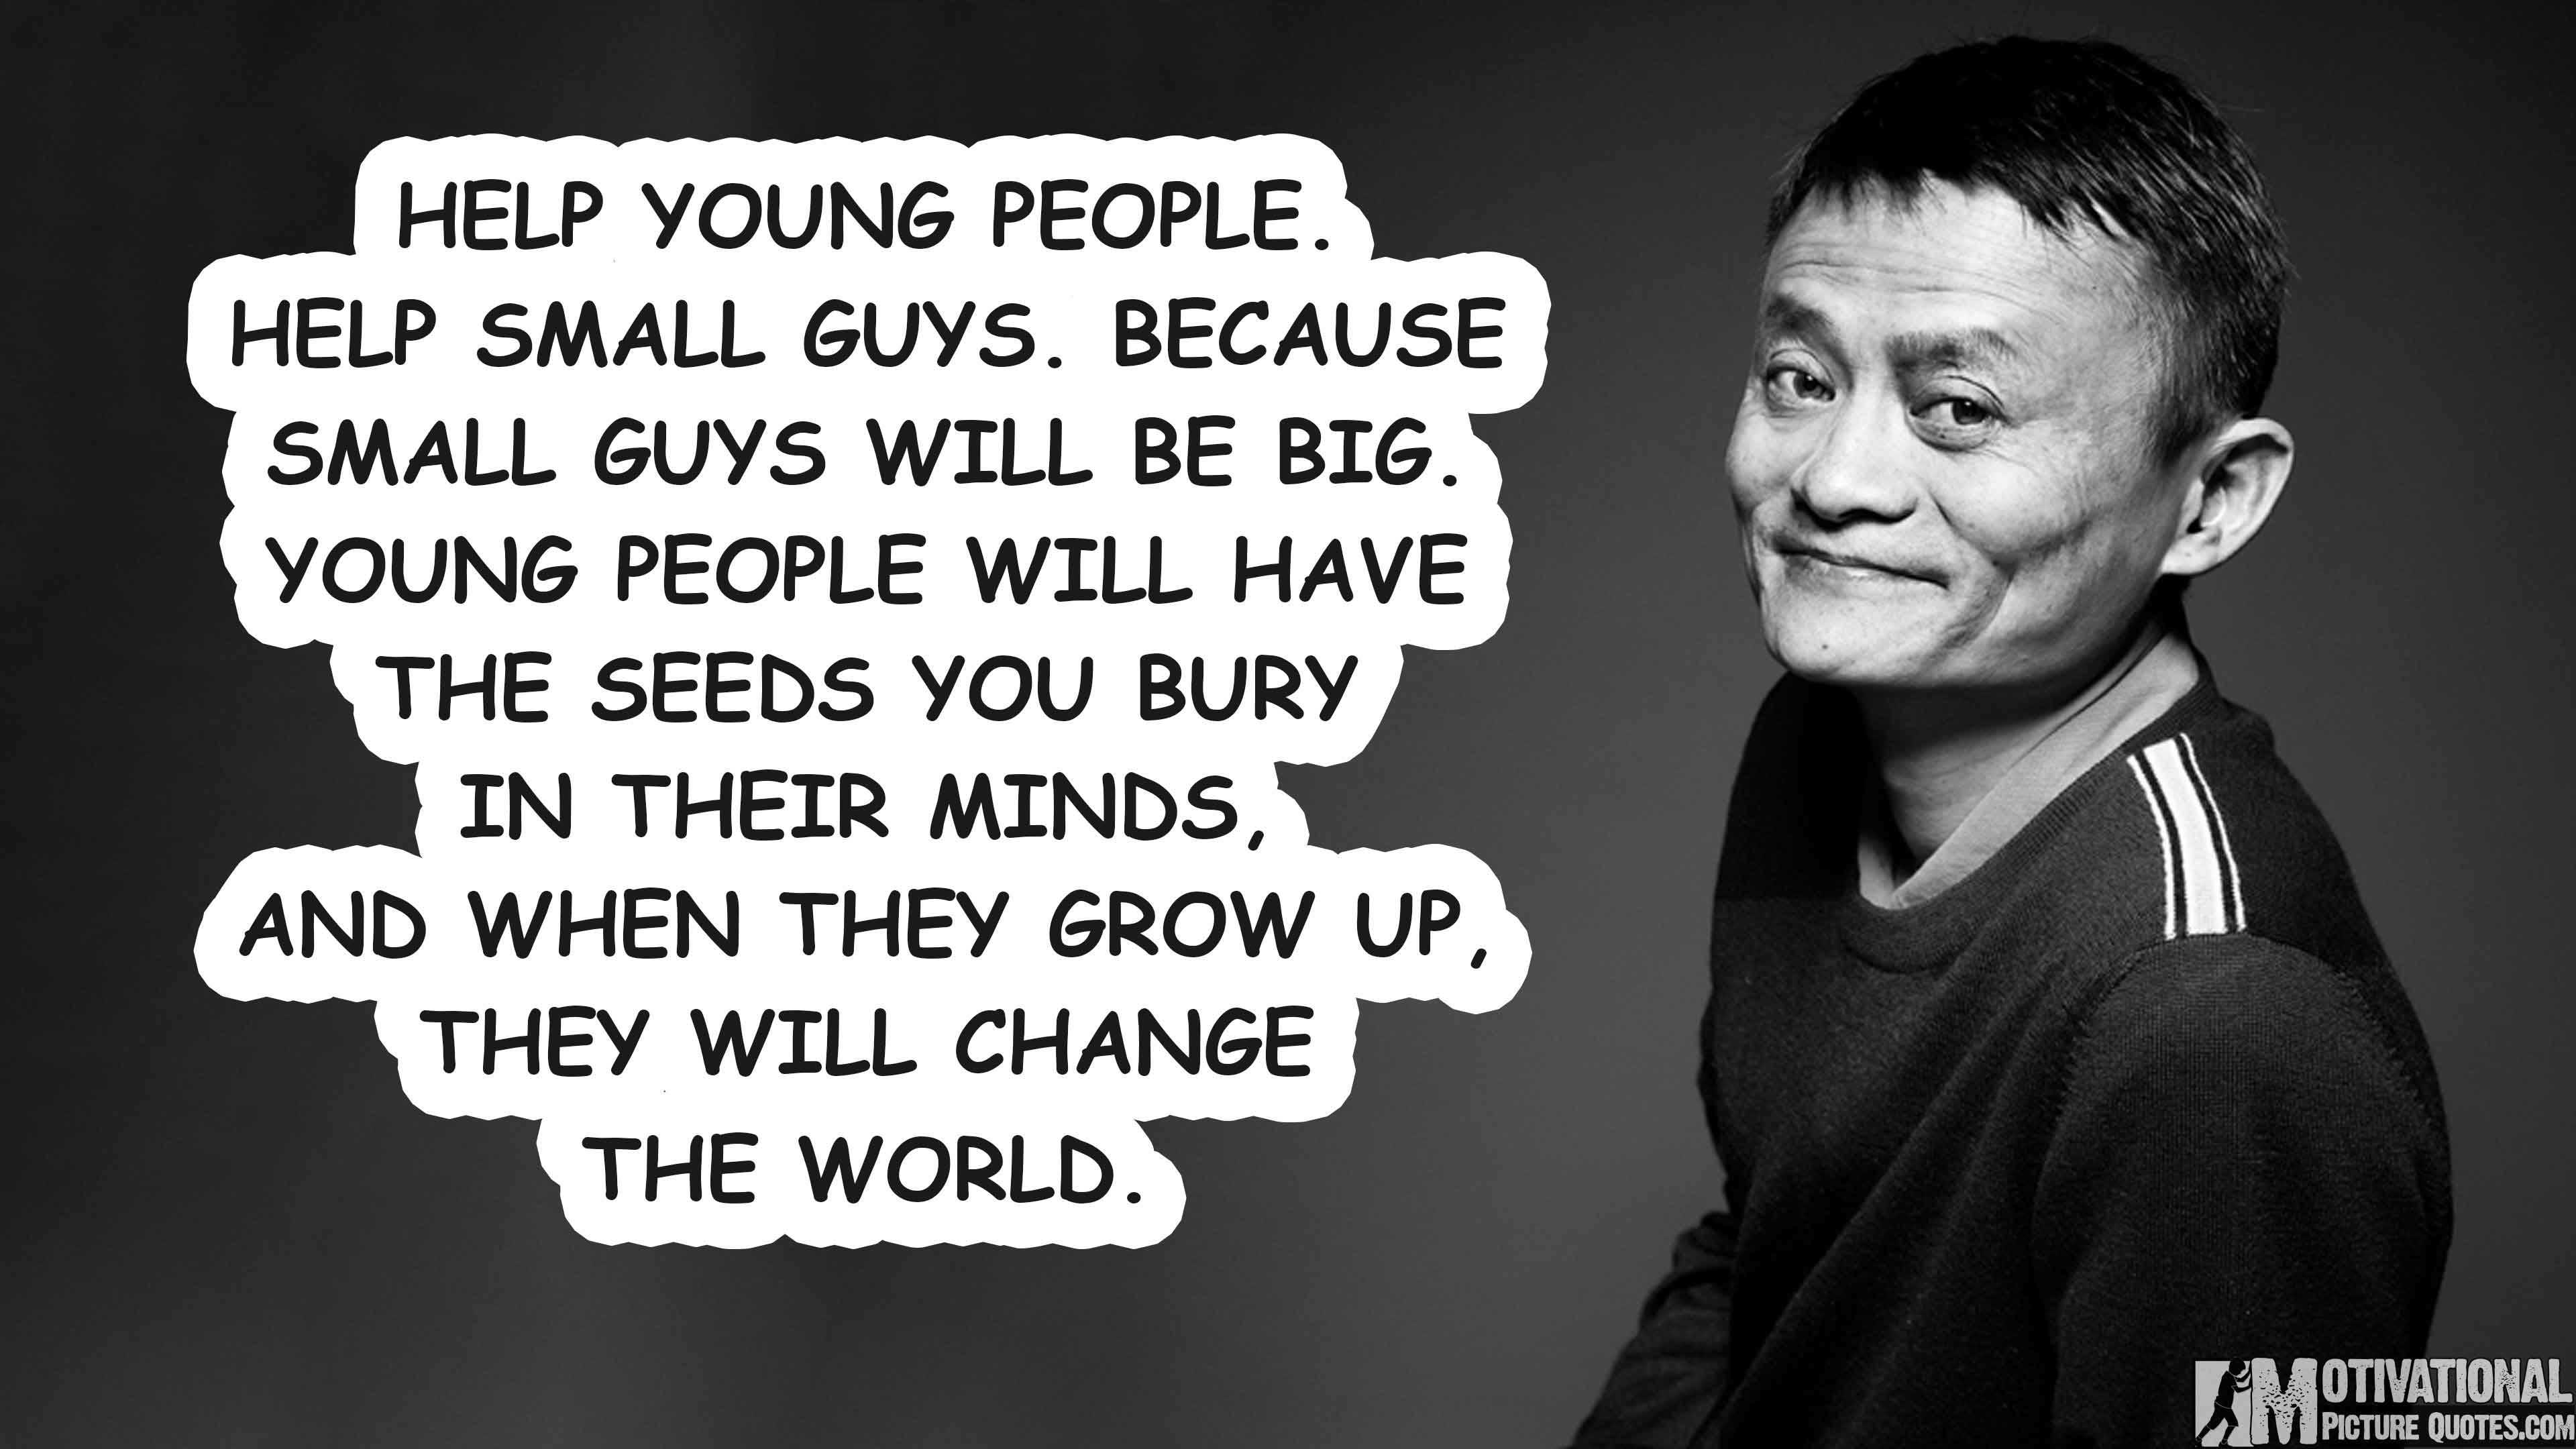 Inspirational Quotes For Young Adults Alibaba Founder Jack Ma Quotes For Entrepreneurs  Insbright